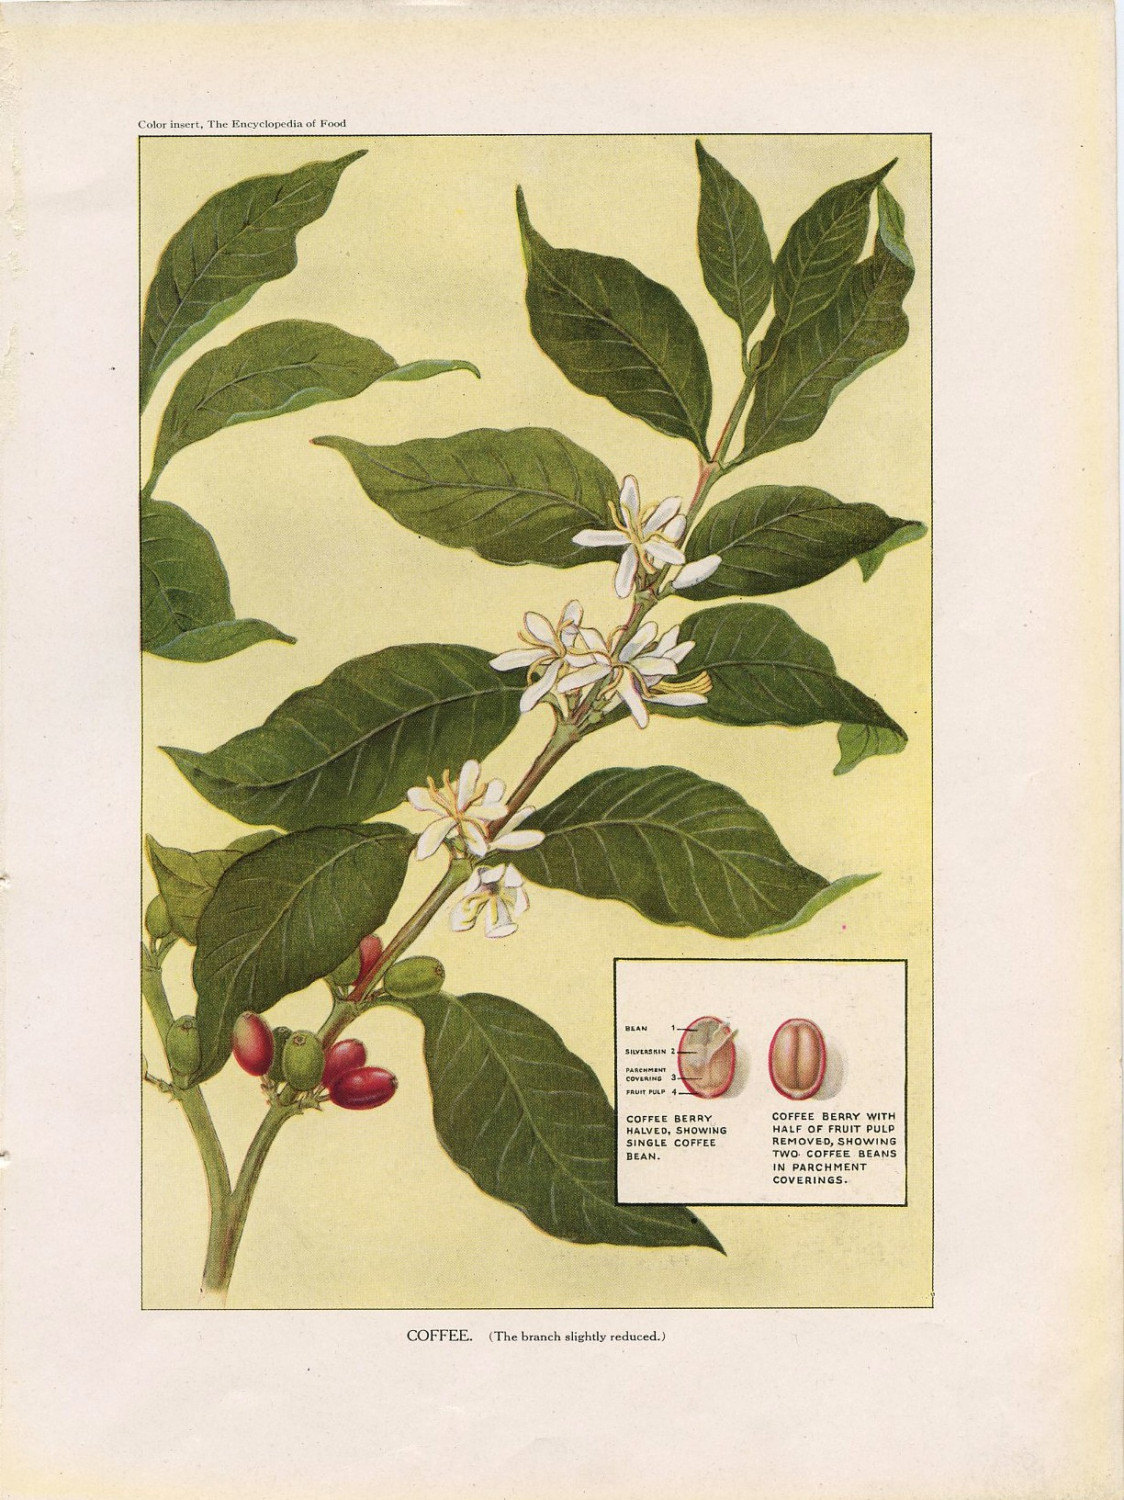 1923 Coffee Bean and Plant from The Encyclopedia of Food by